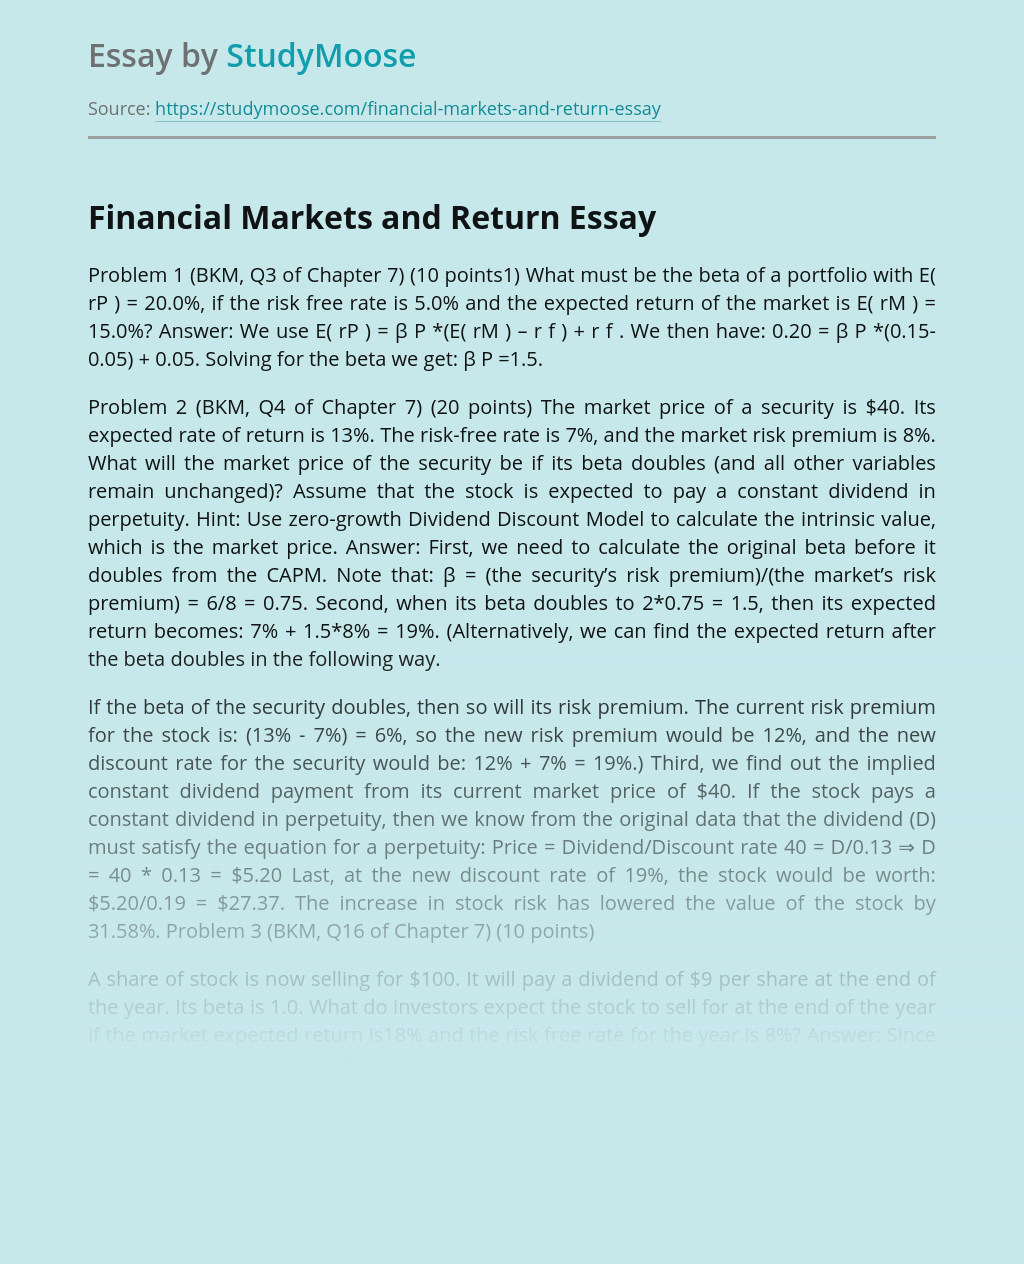 Financial Markets and Return